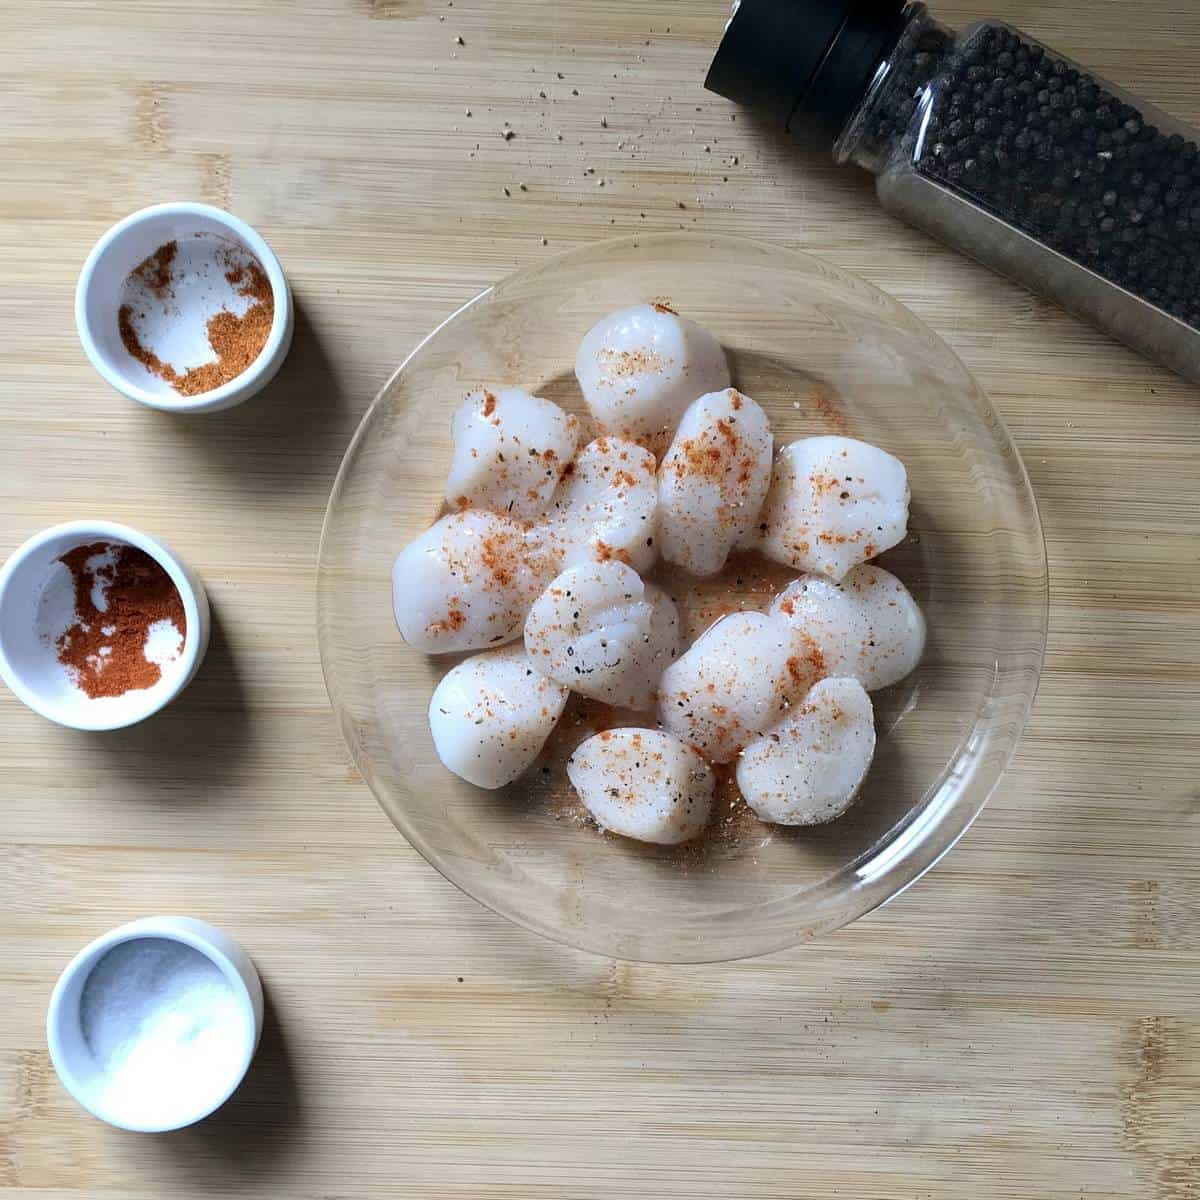 Spices and scallops on a wooden board.